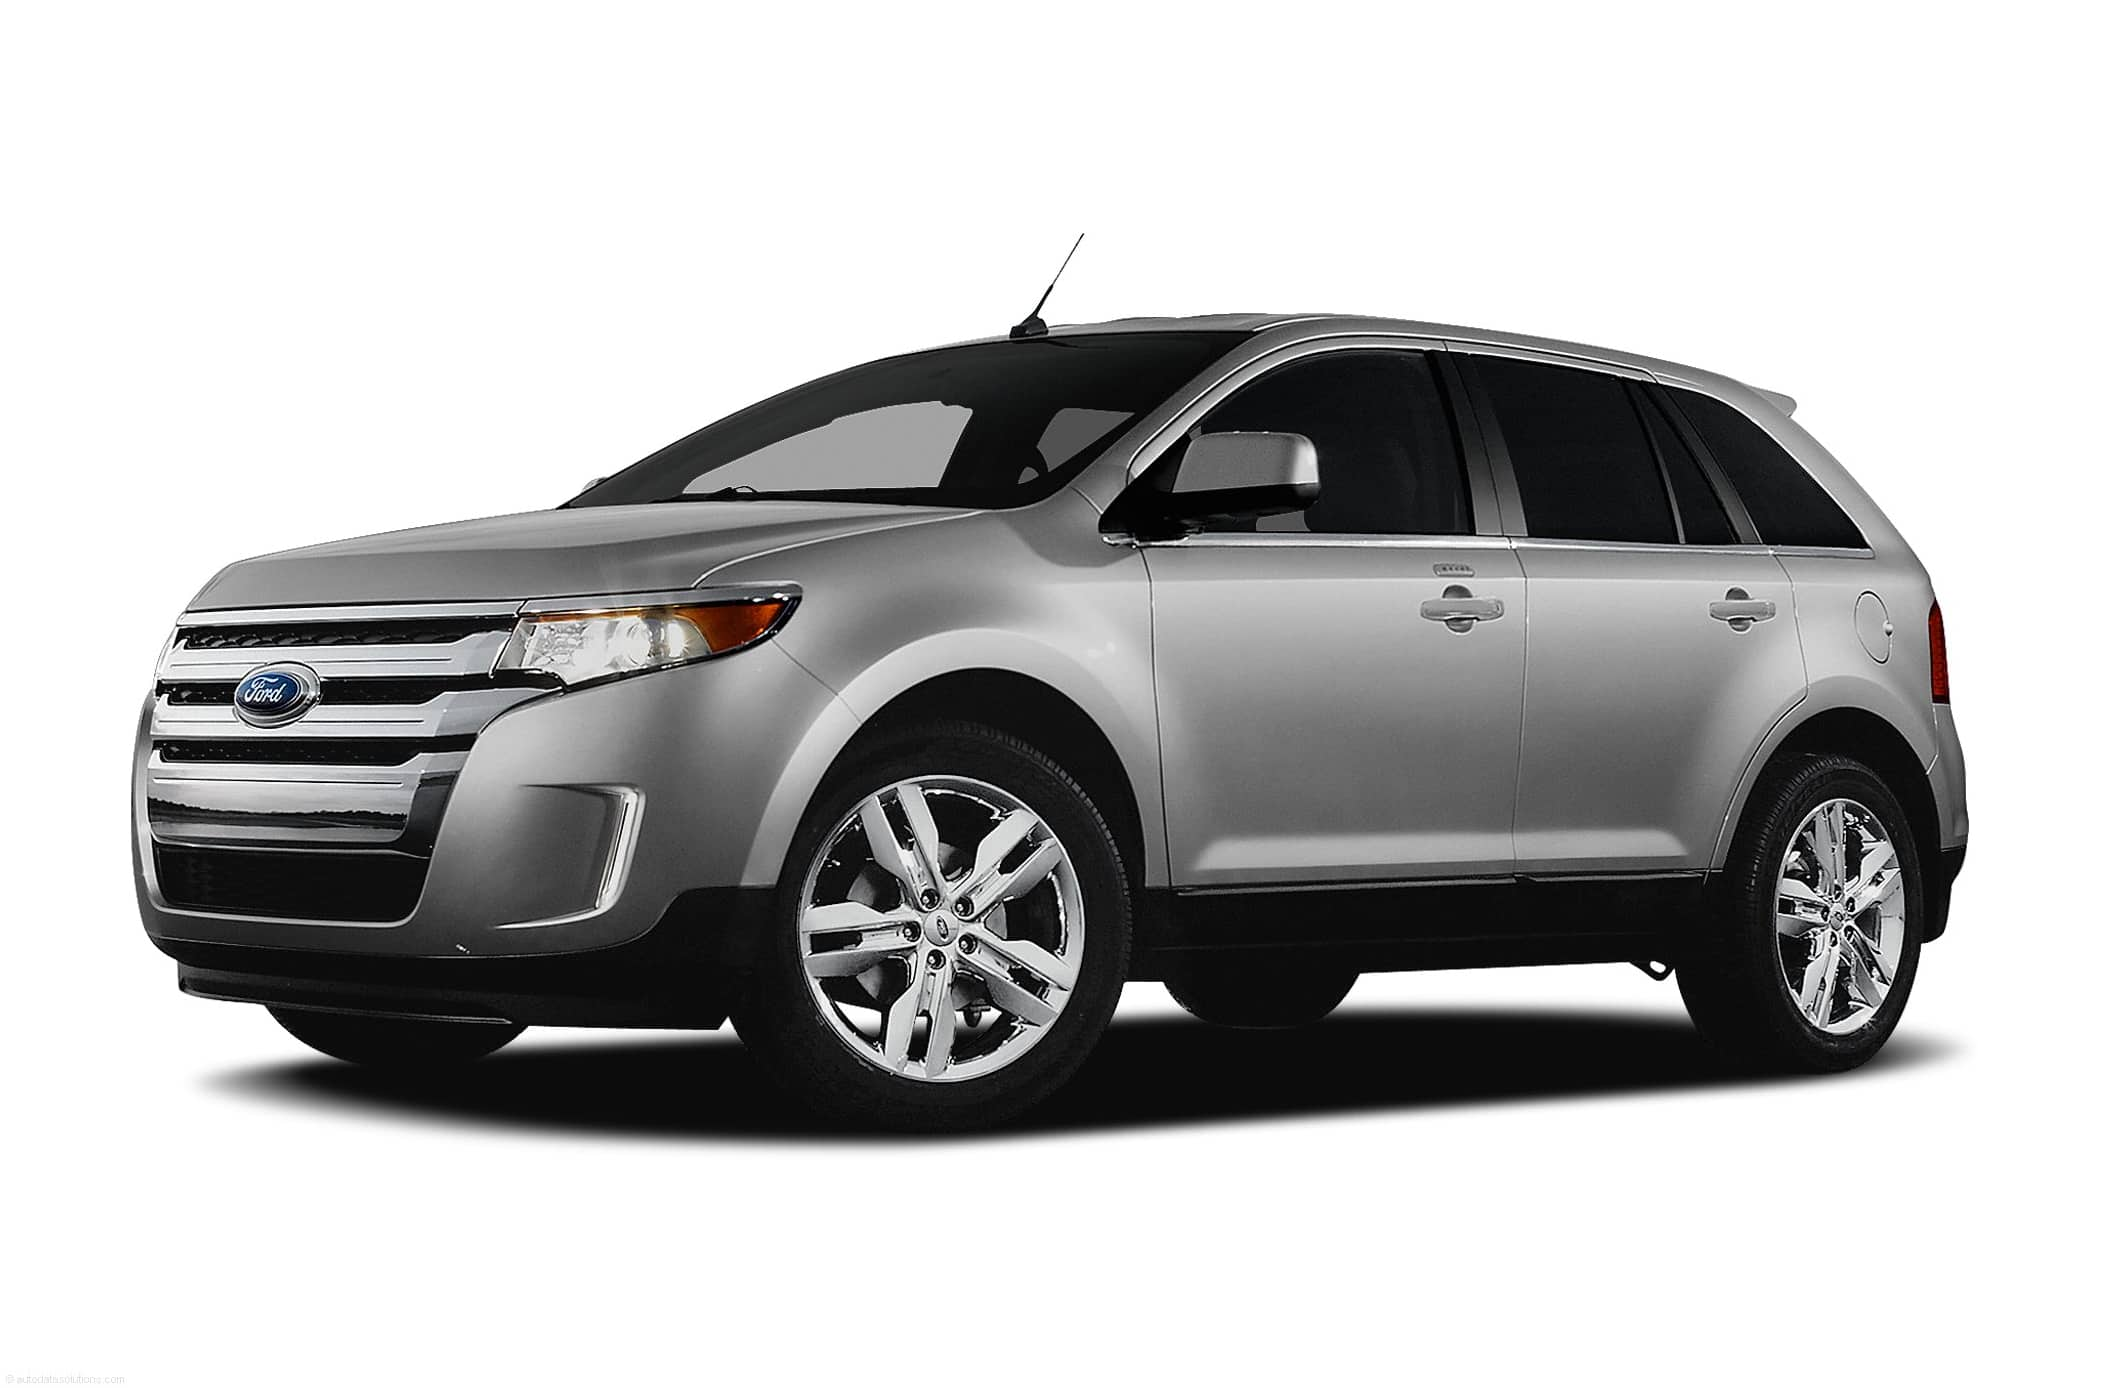 2011 Ford Edge Teardown Analysis